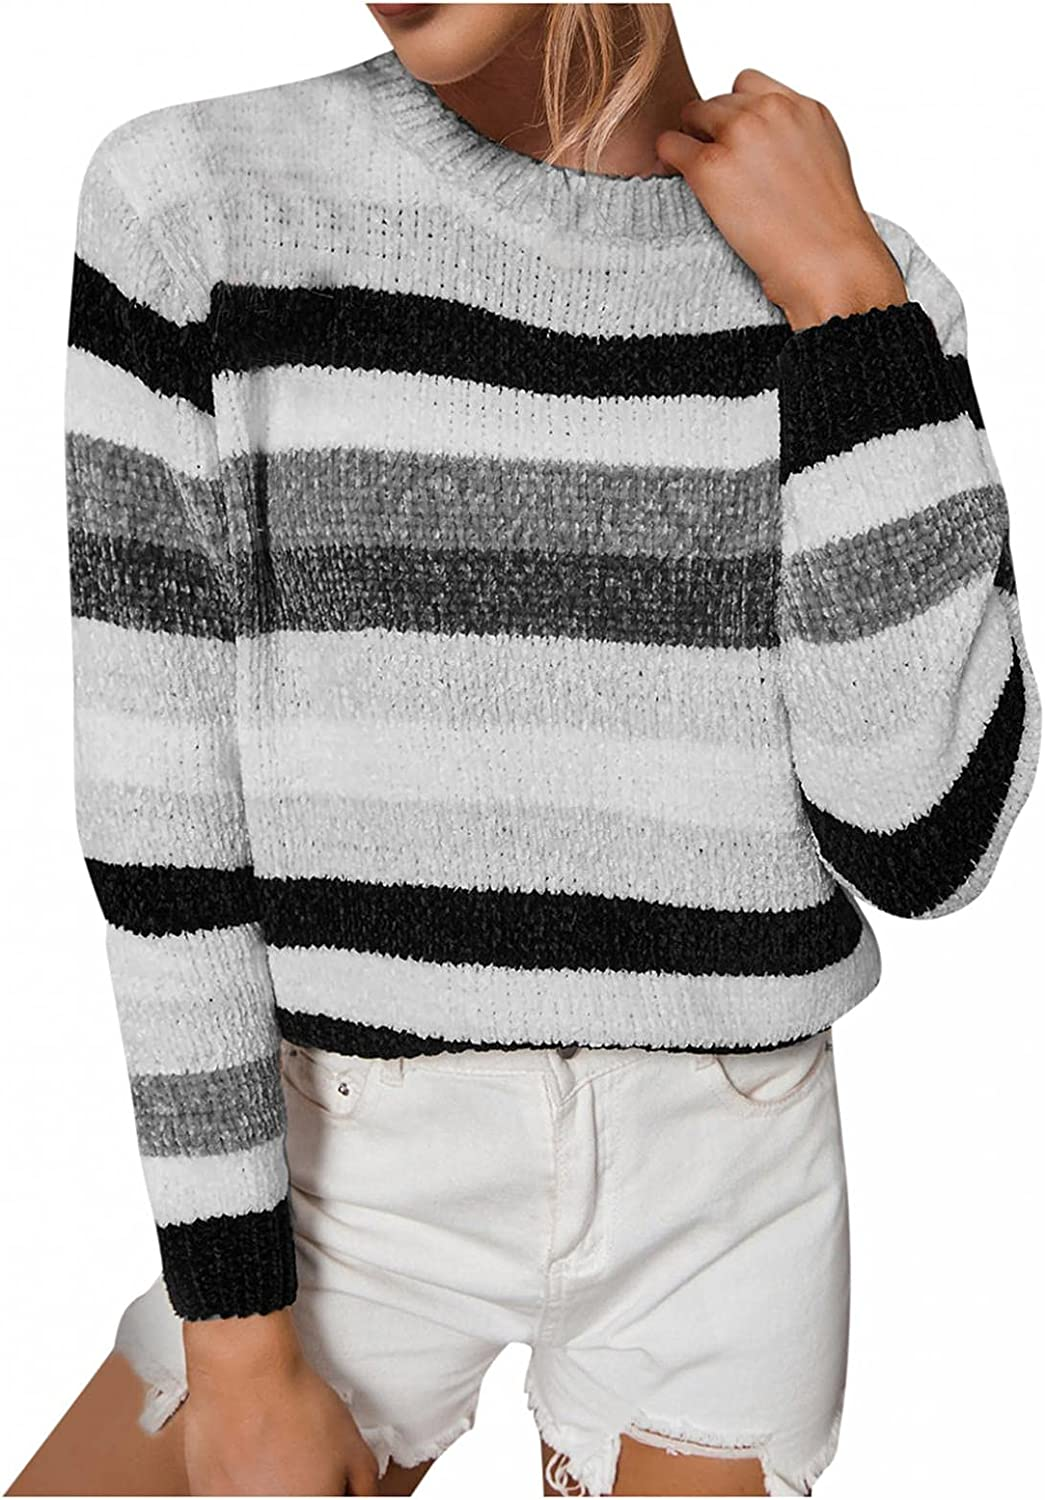 Sweaters for Women,Women's Crew Neck Oversized Long Sleeve Striped Color Block Knitted Sweater Loose Pullover Jumper Tops